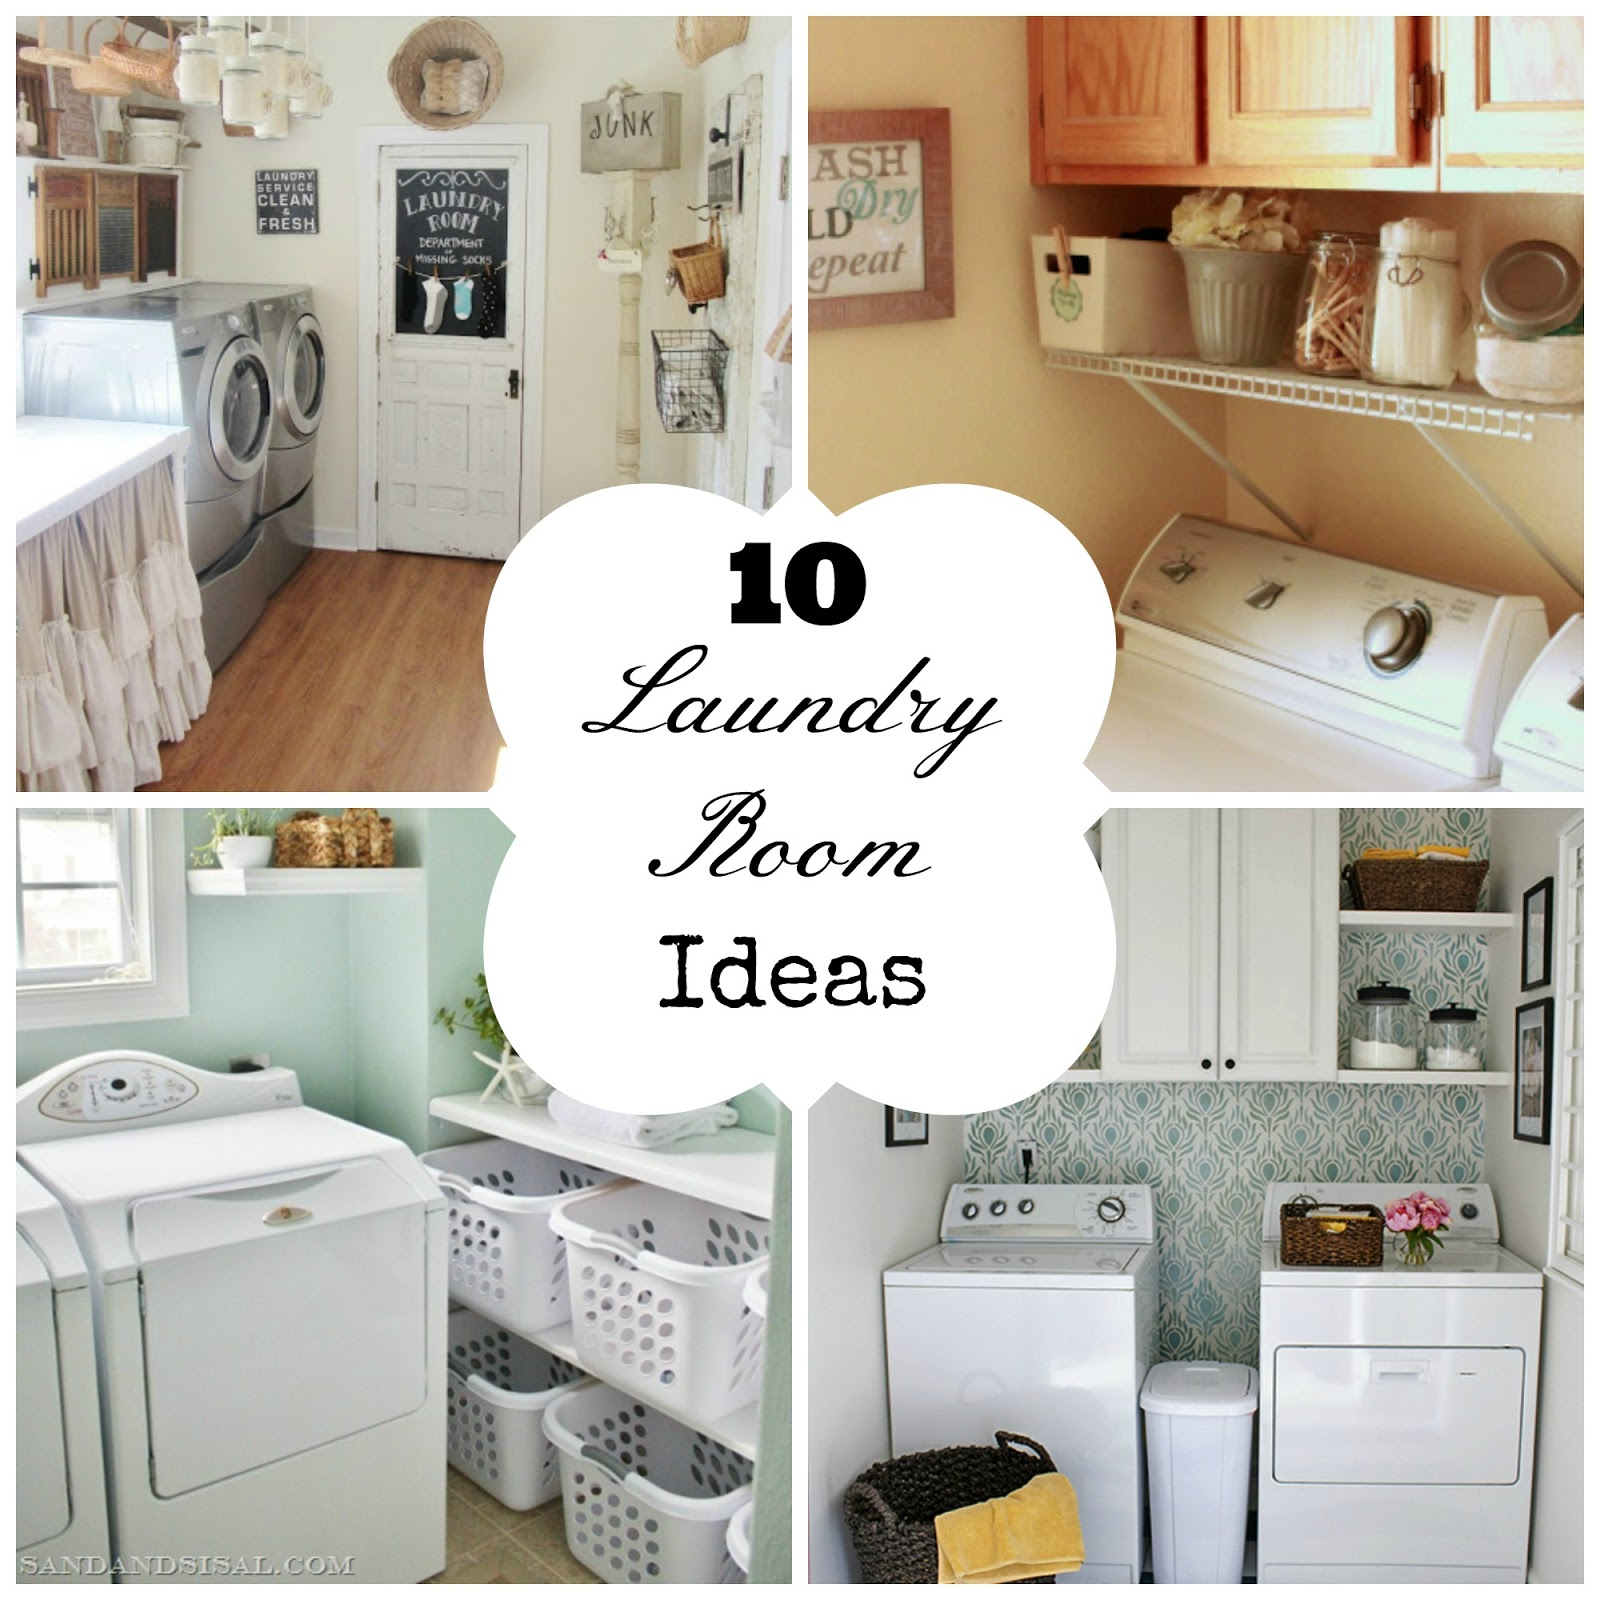 10 laundry room ideas fun home things for Laundry room plans